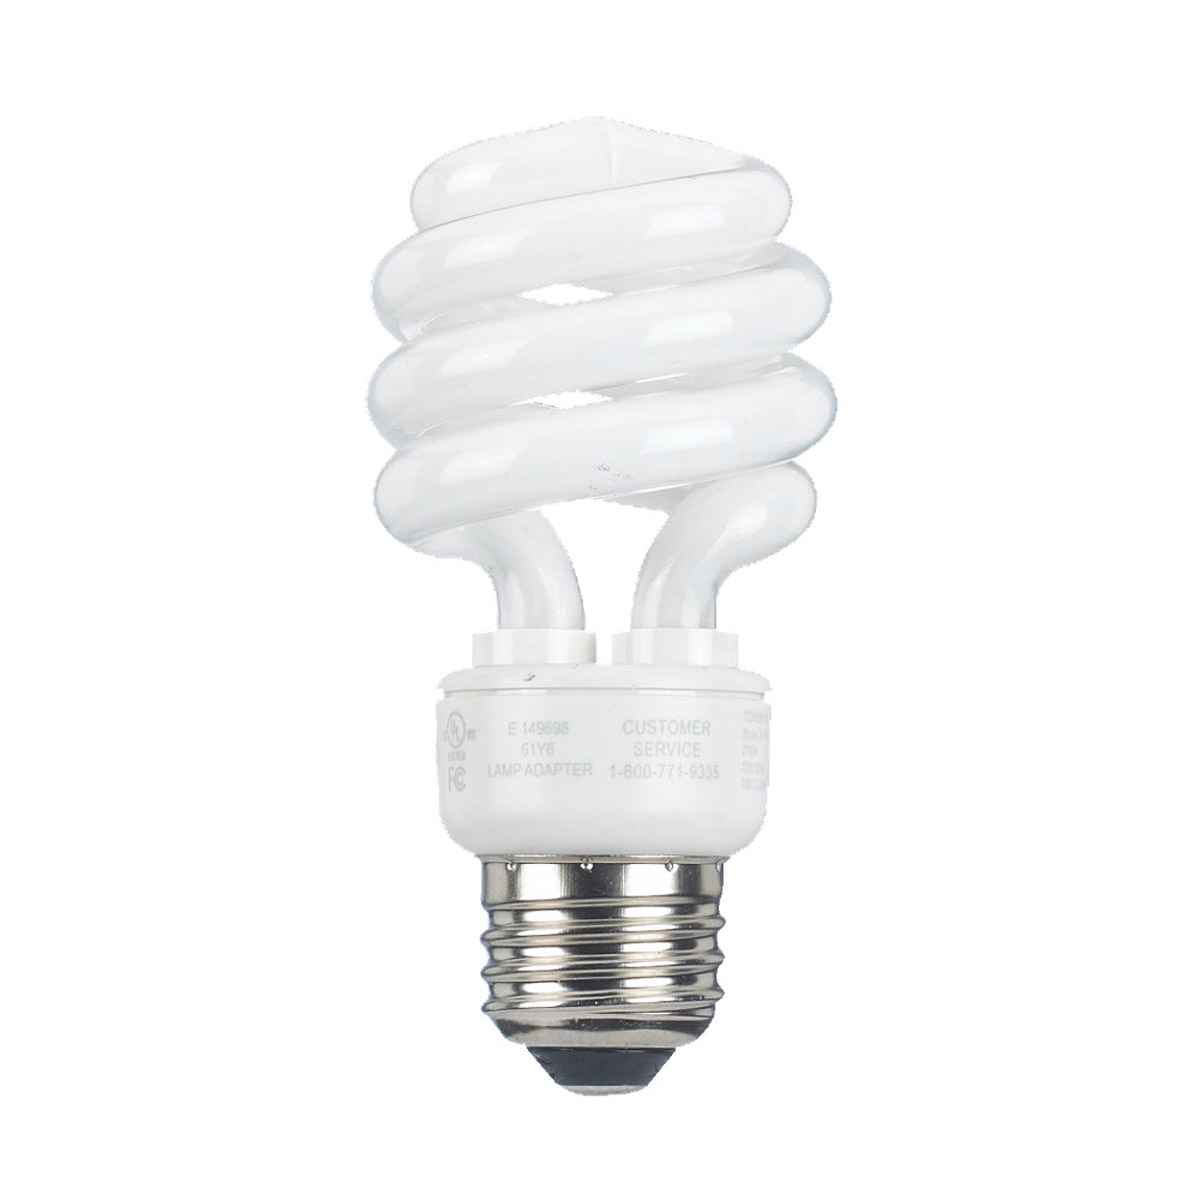 Sea Gull 97049 Signature Spiral 3000K Light Bulb photo